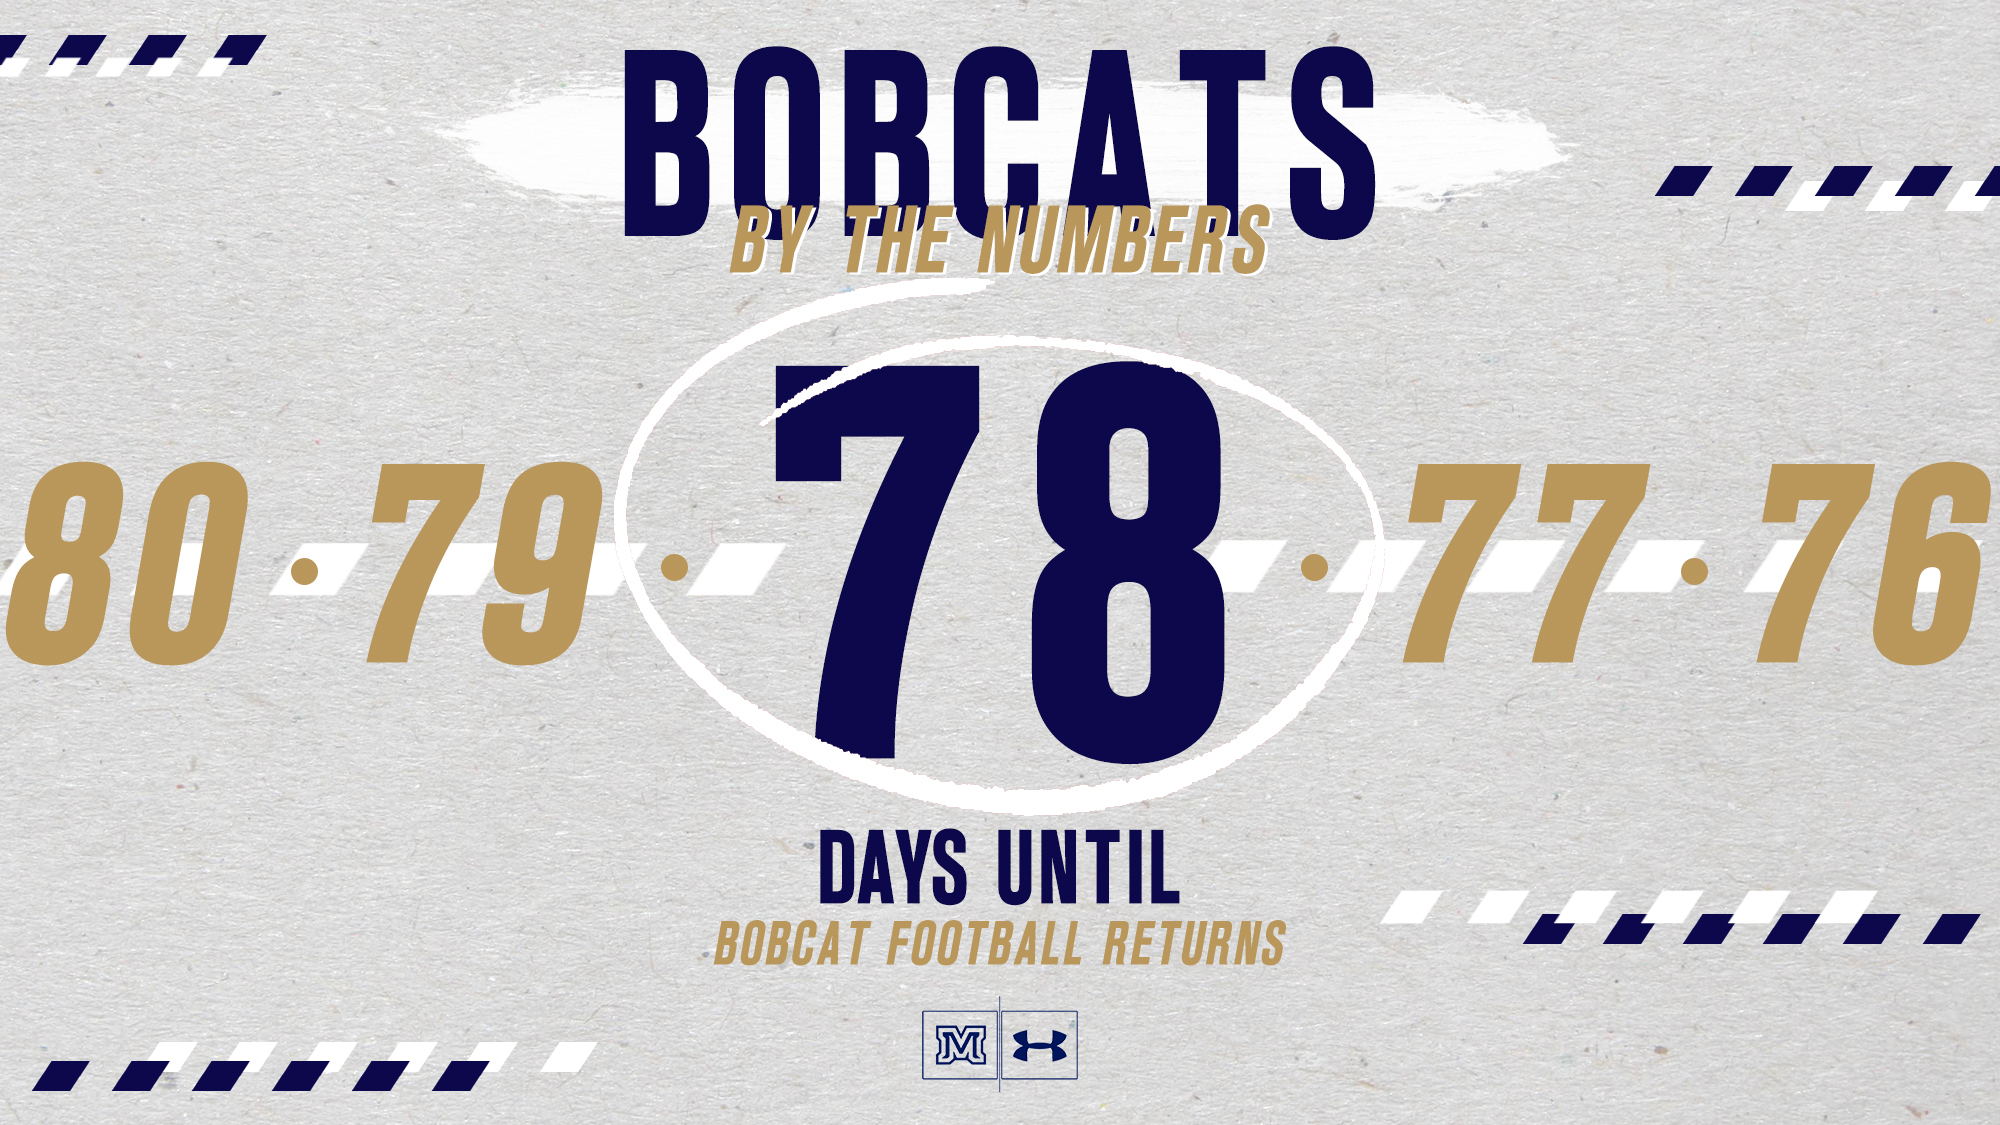 BOBCATS BY THE NUMBERS: 78 Days Before Kickoff We Look at Jan Stenerud's Most Famous Day as a Bobcat